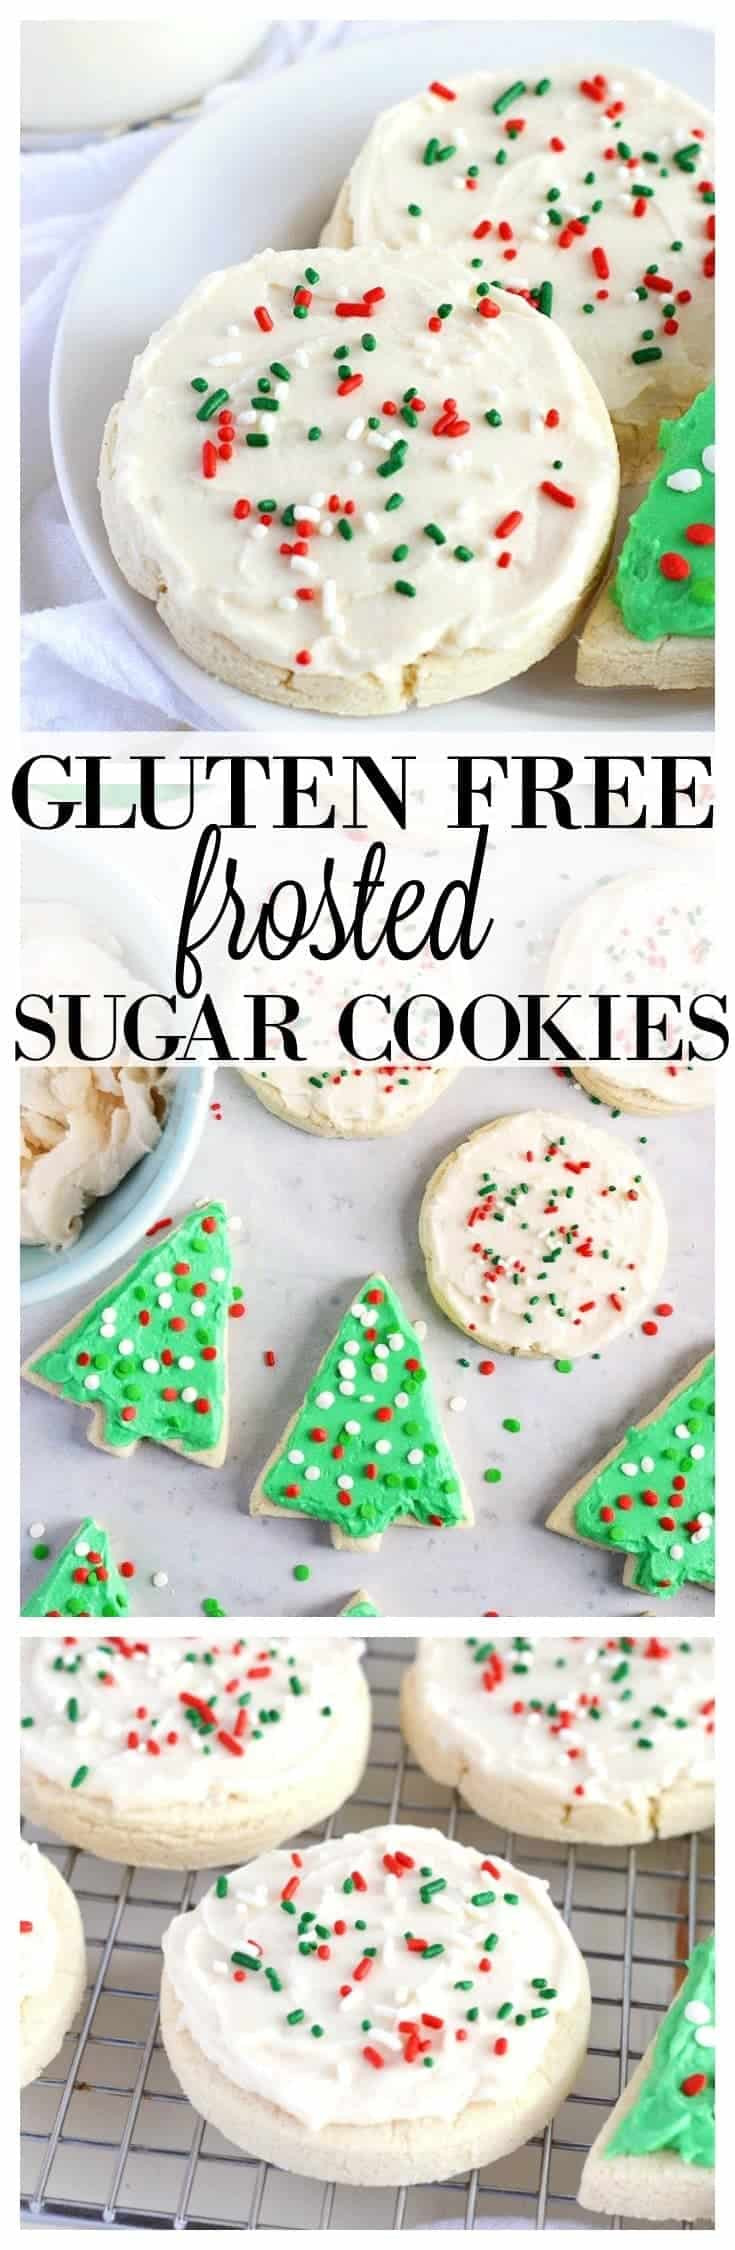 Gluten Free Dairy Free Sugar Free Cookies  Gluten Free Soft Frosted Sugar Cookies What the Fork